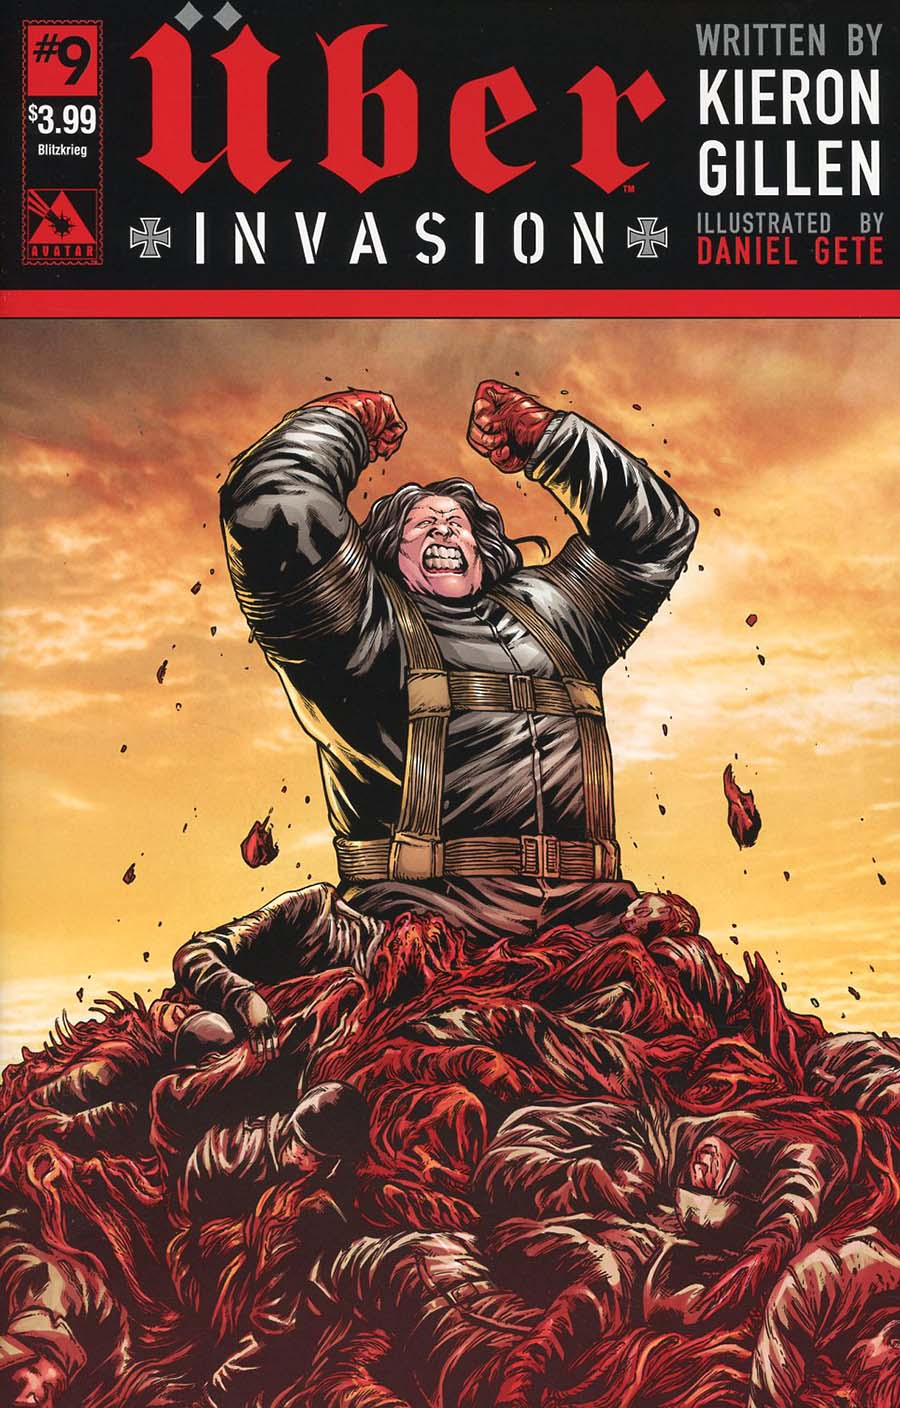 Uber Invasion #9 Cover C Blitzkrieg Cover